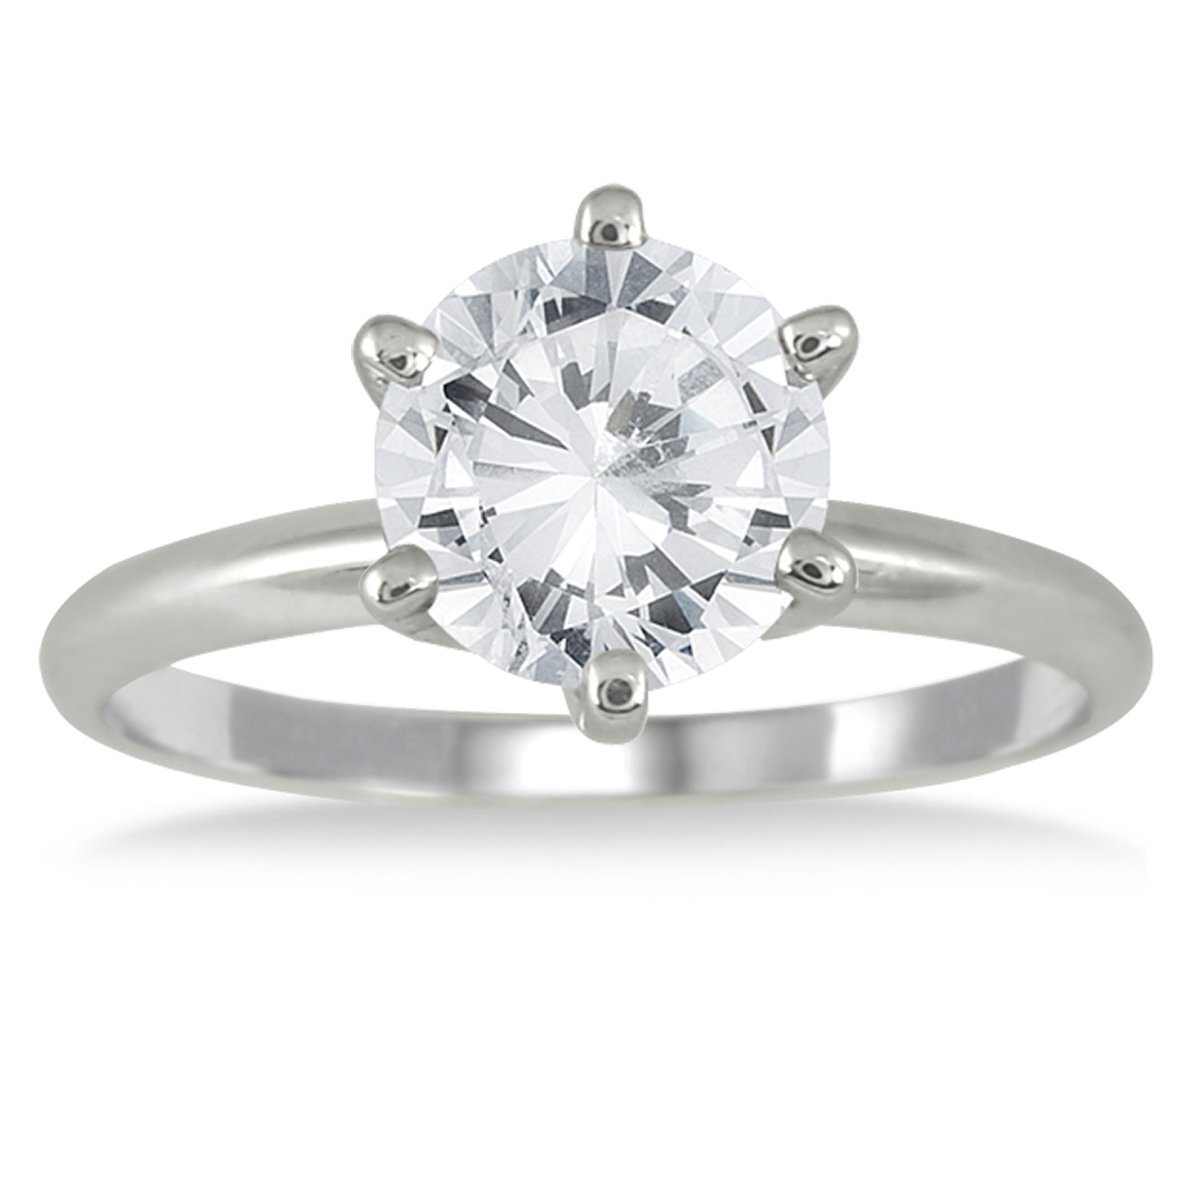 AGS Certified 1 1 2 Carat Diamond Solitaire Ring in 14K White Gold ... 76a4b7225